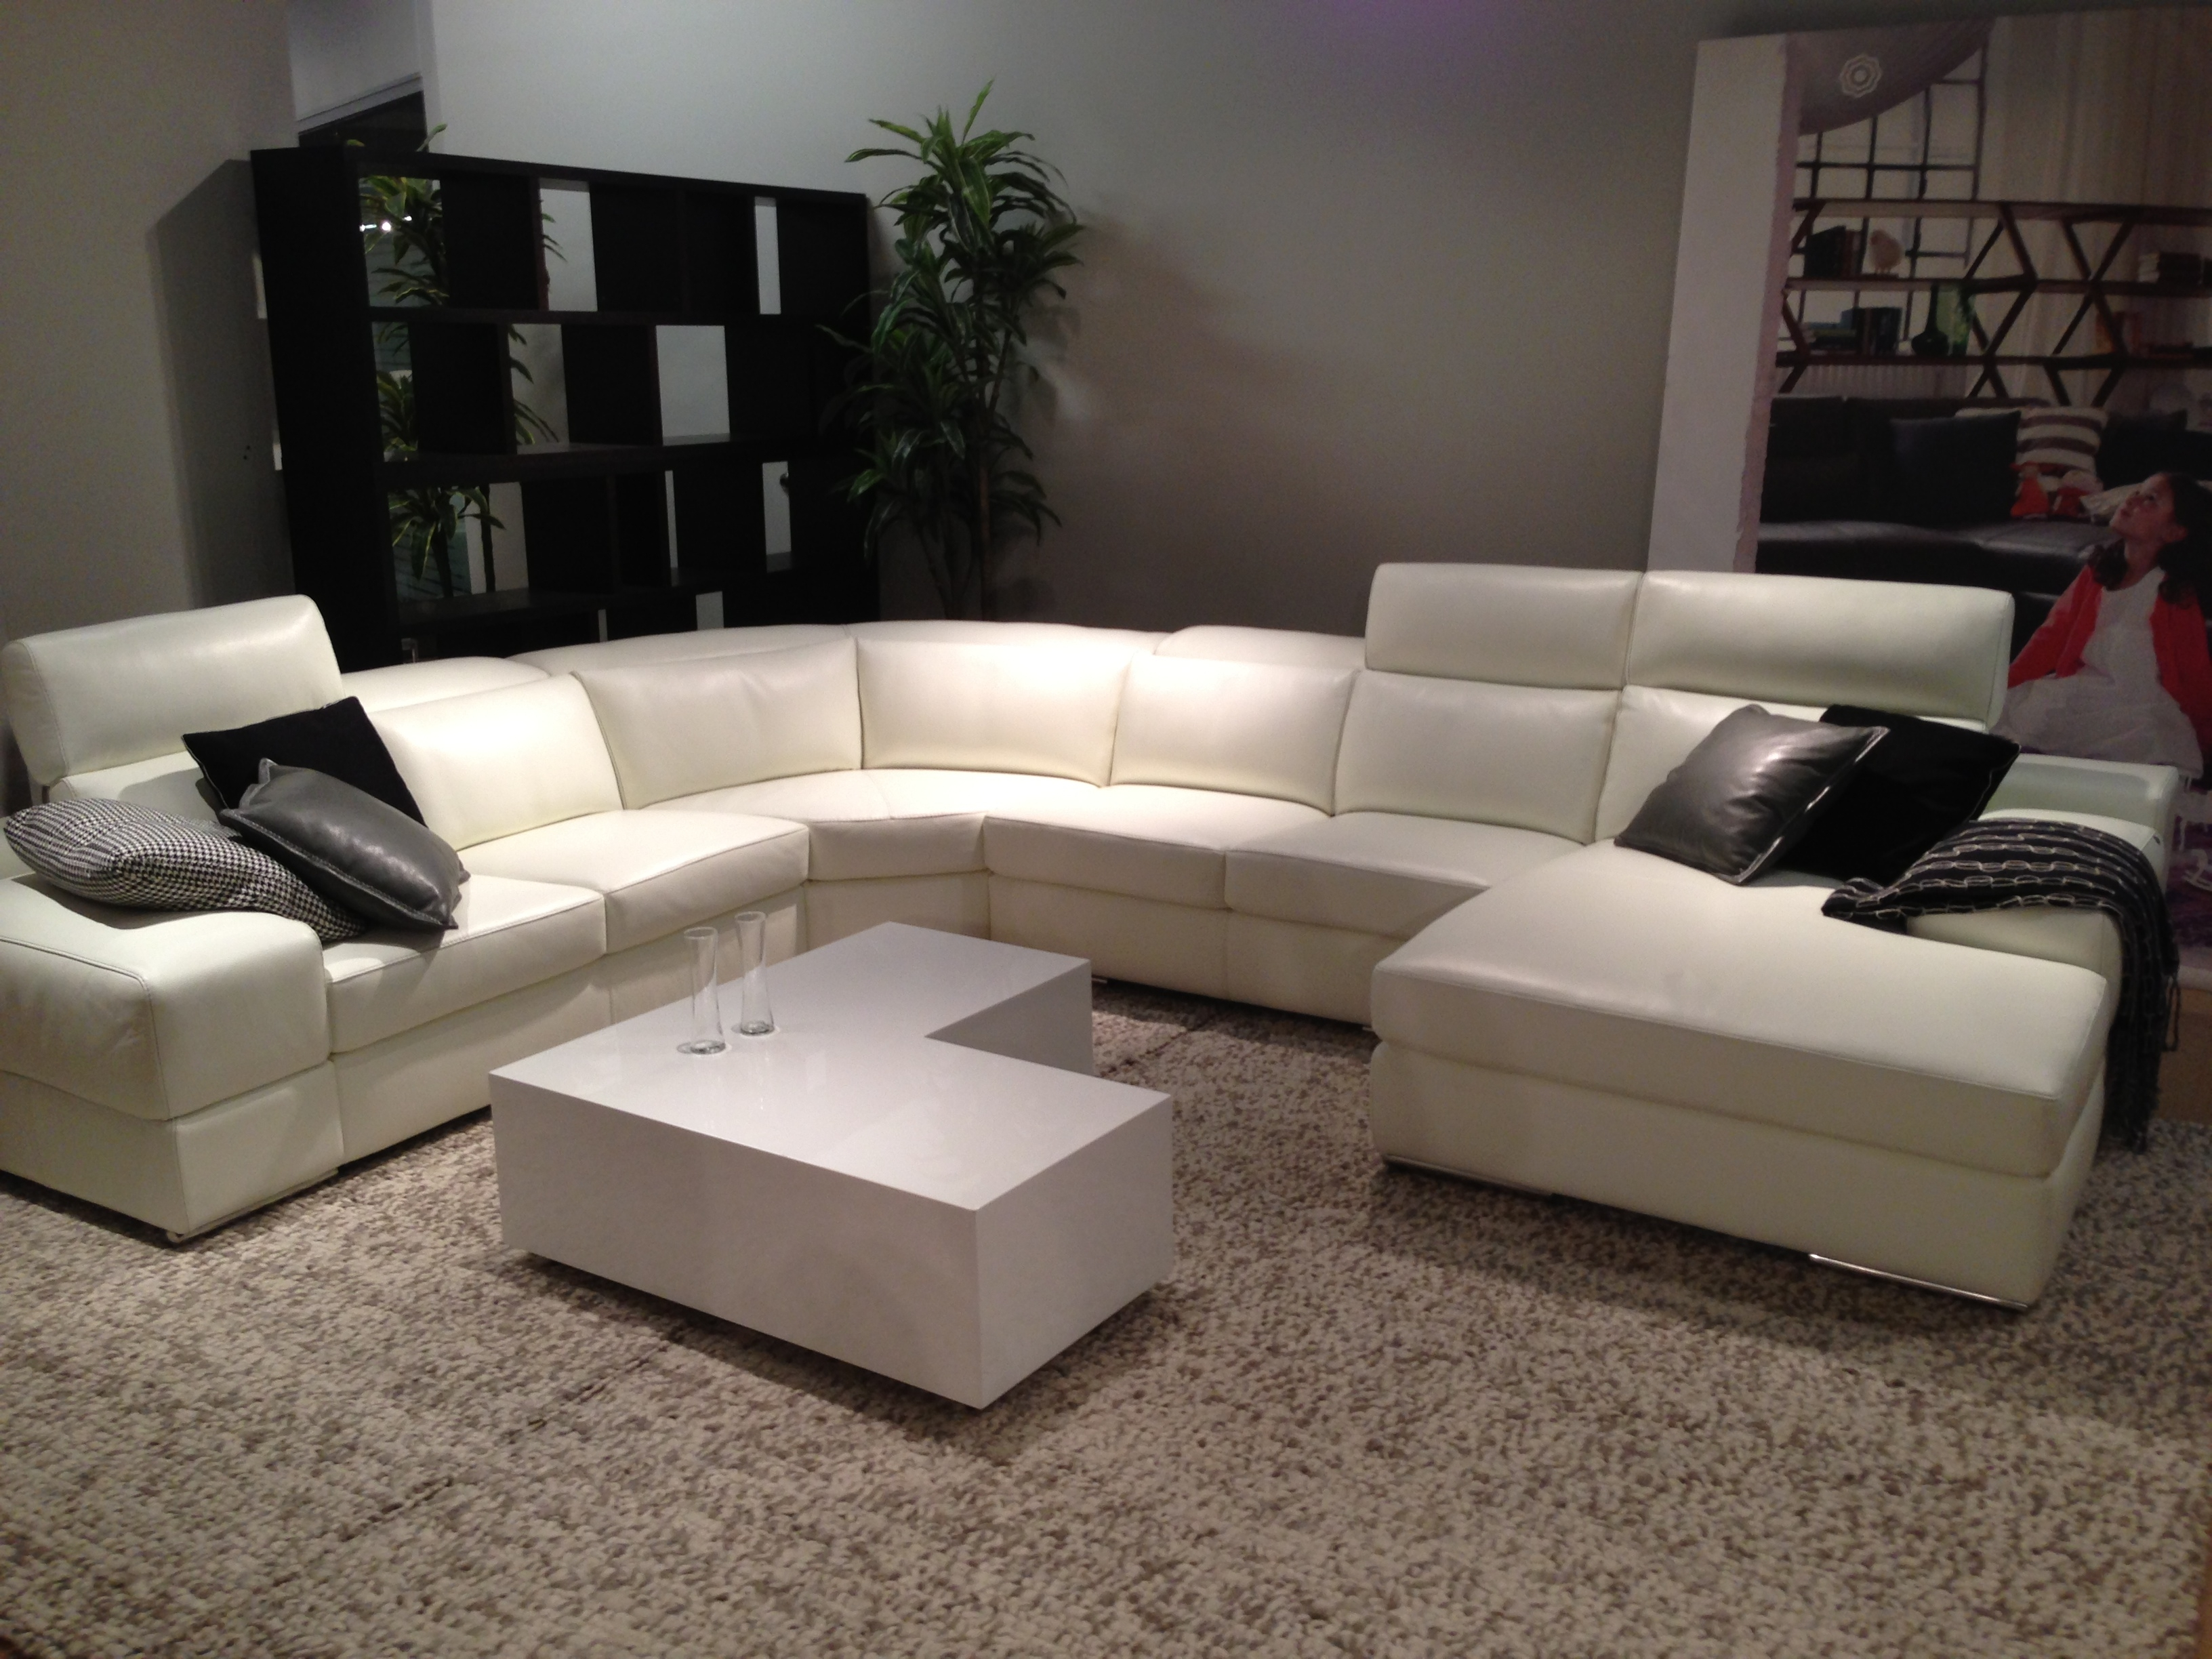 Modern White Leather Sectional Htl Portland Oregon 1,632×1,224 In Portland Sectional Sofas (View 7 of 10)